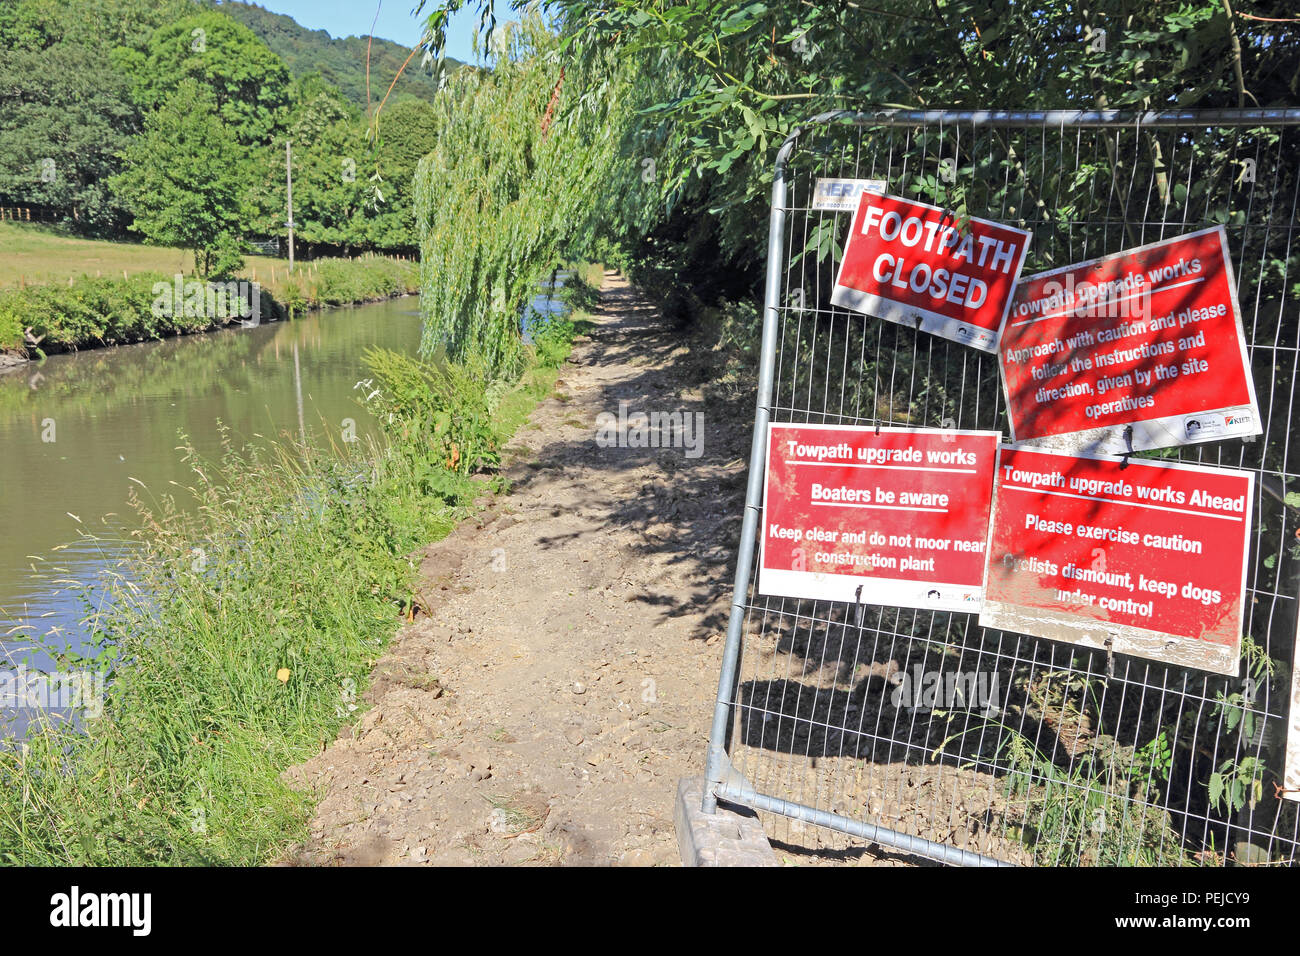 Canal towpath closed signs, to allow improvements to towpath surface - Stock Image